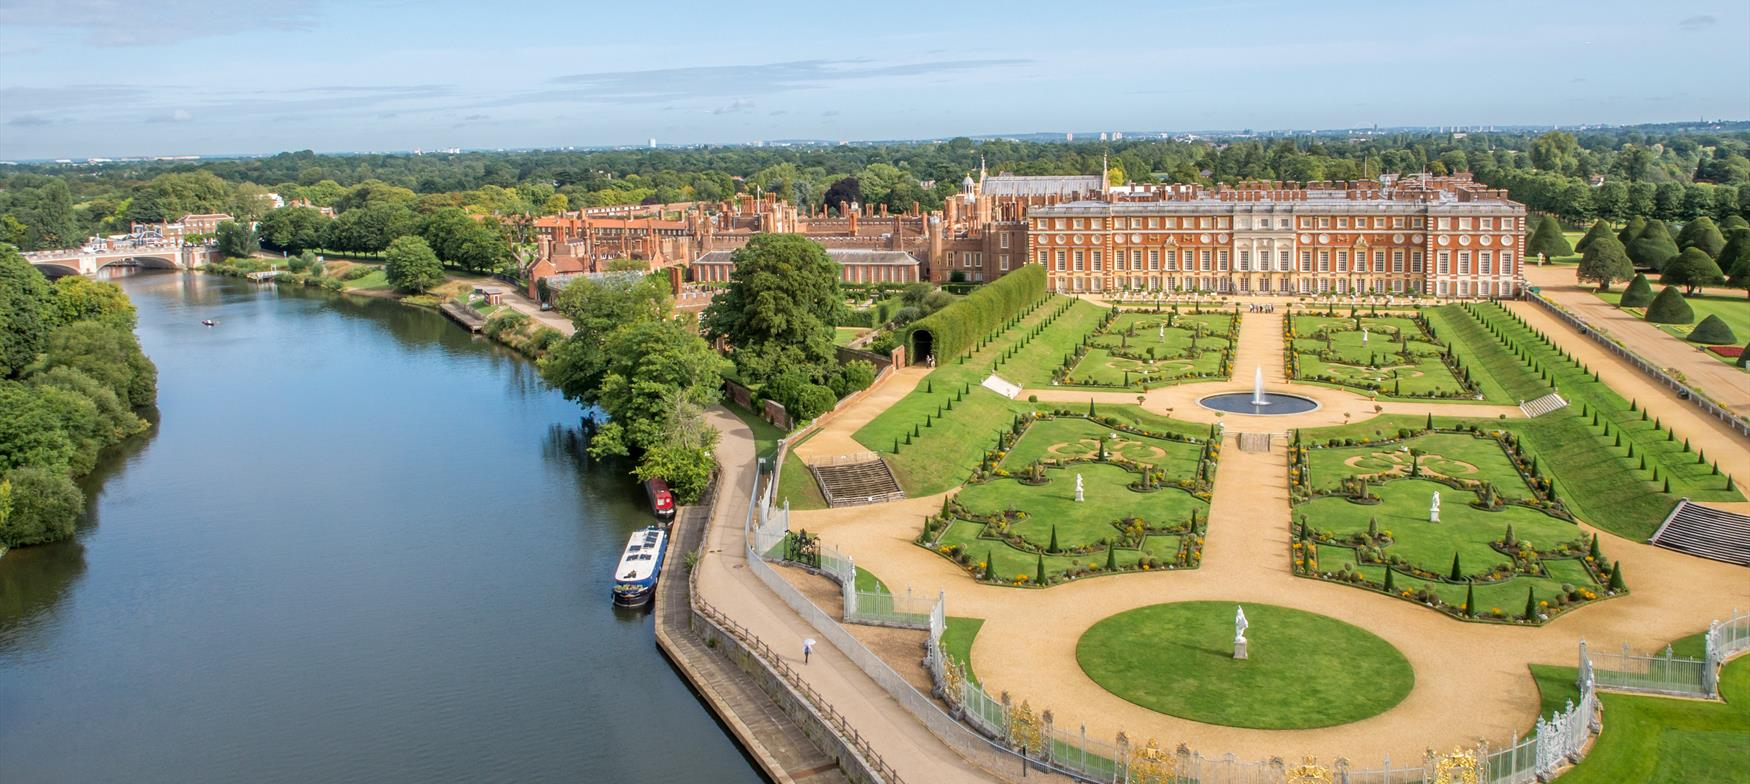 Hampton Court Palace - one of many things to see and do